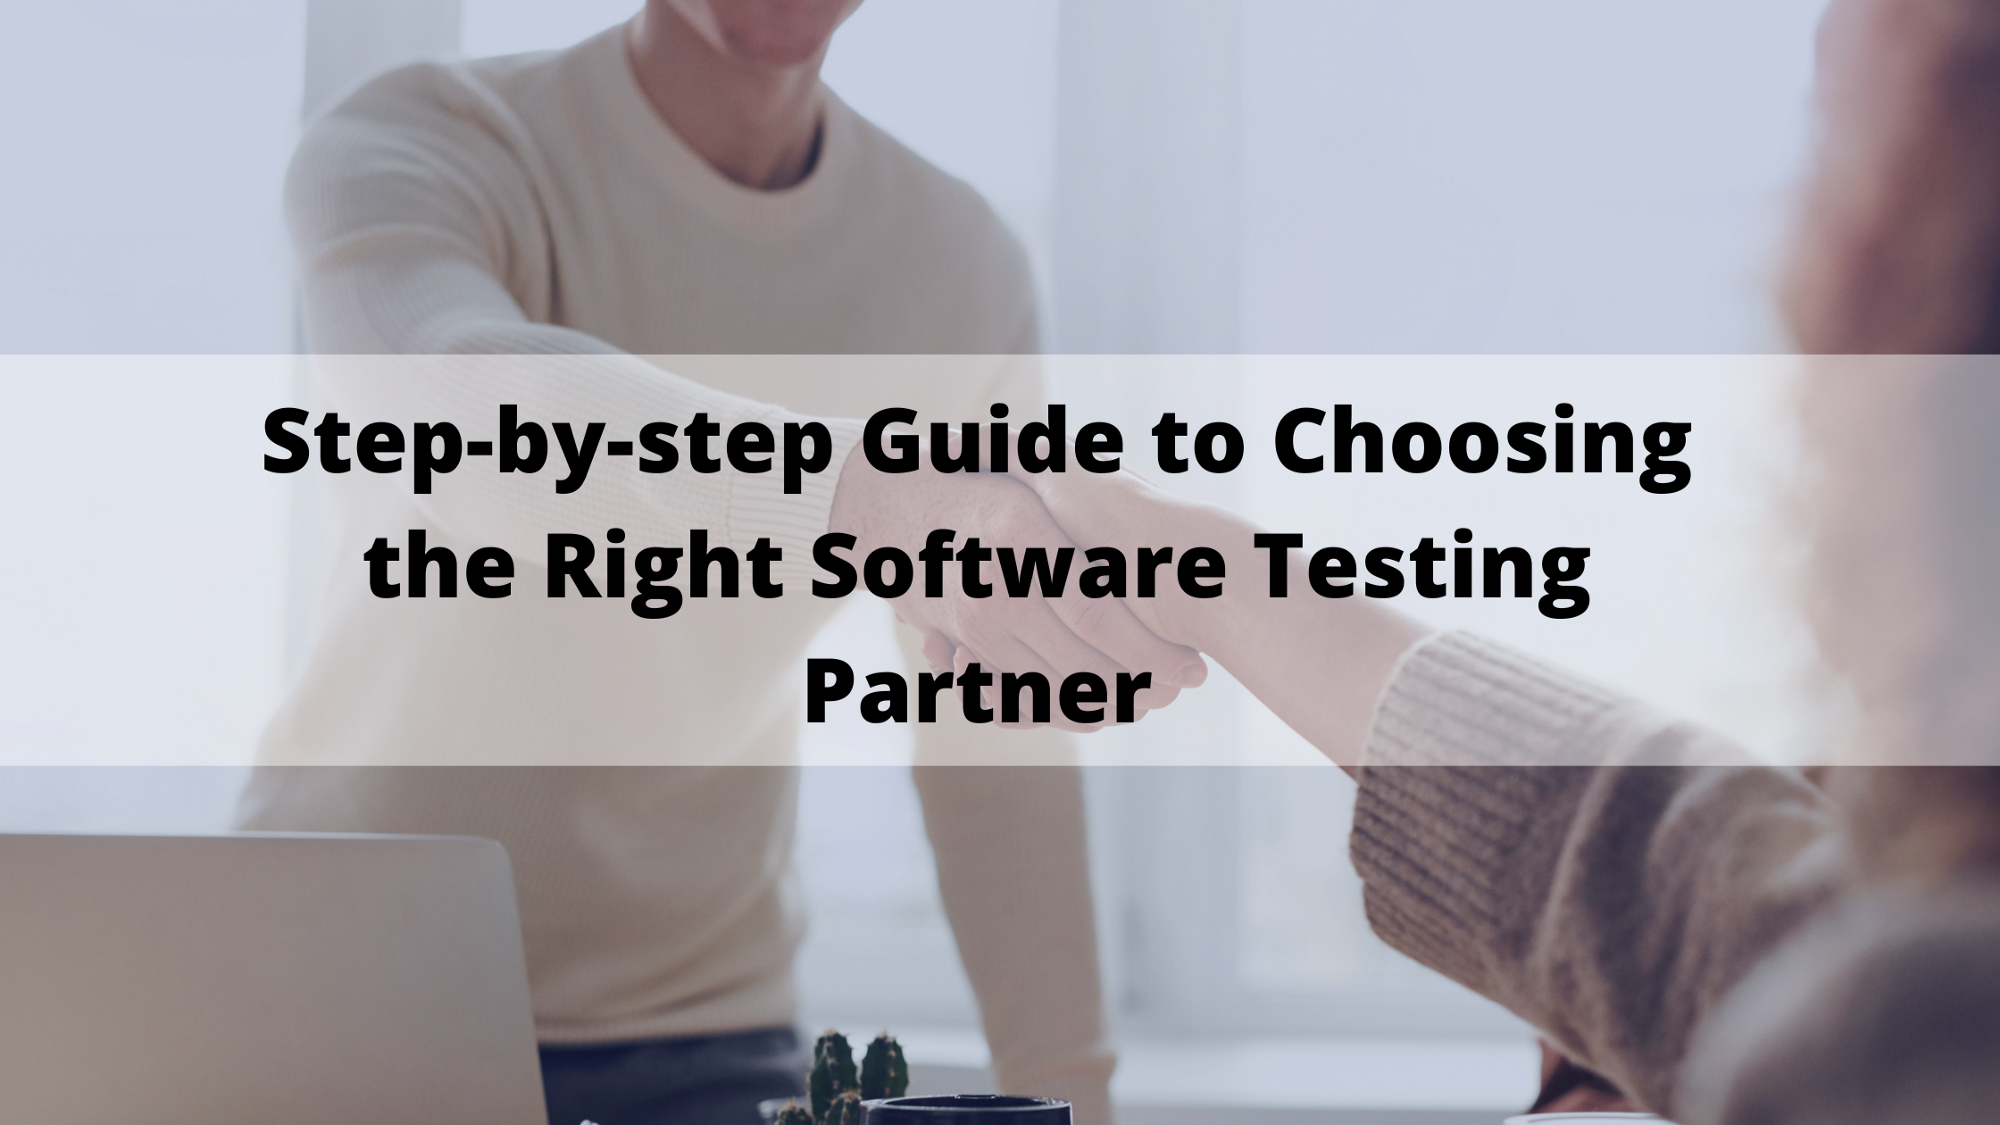 Step-by-step Guide to Choosing the Right Software Testing Partner